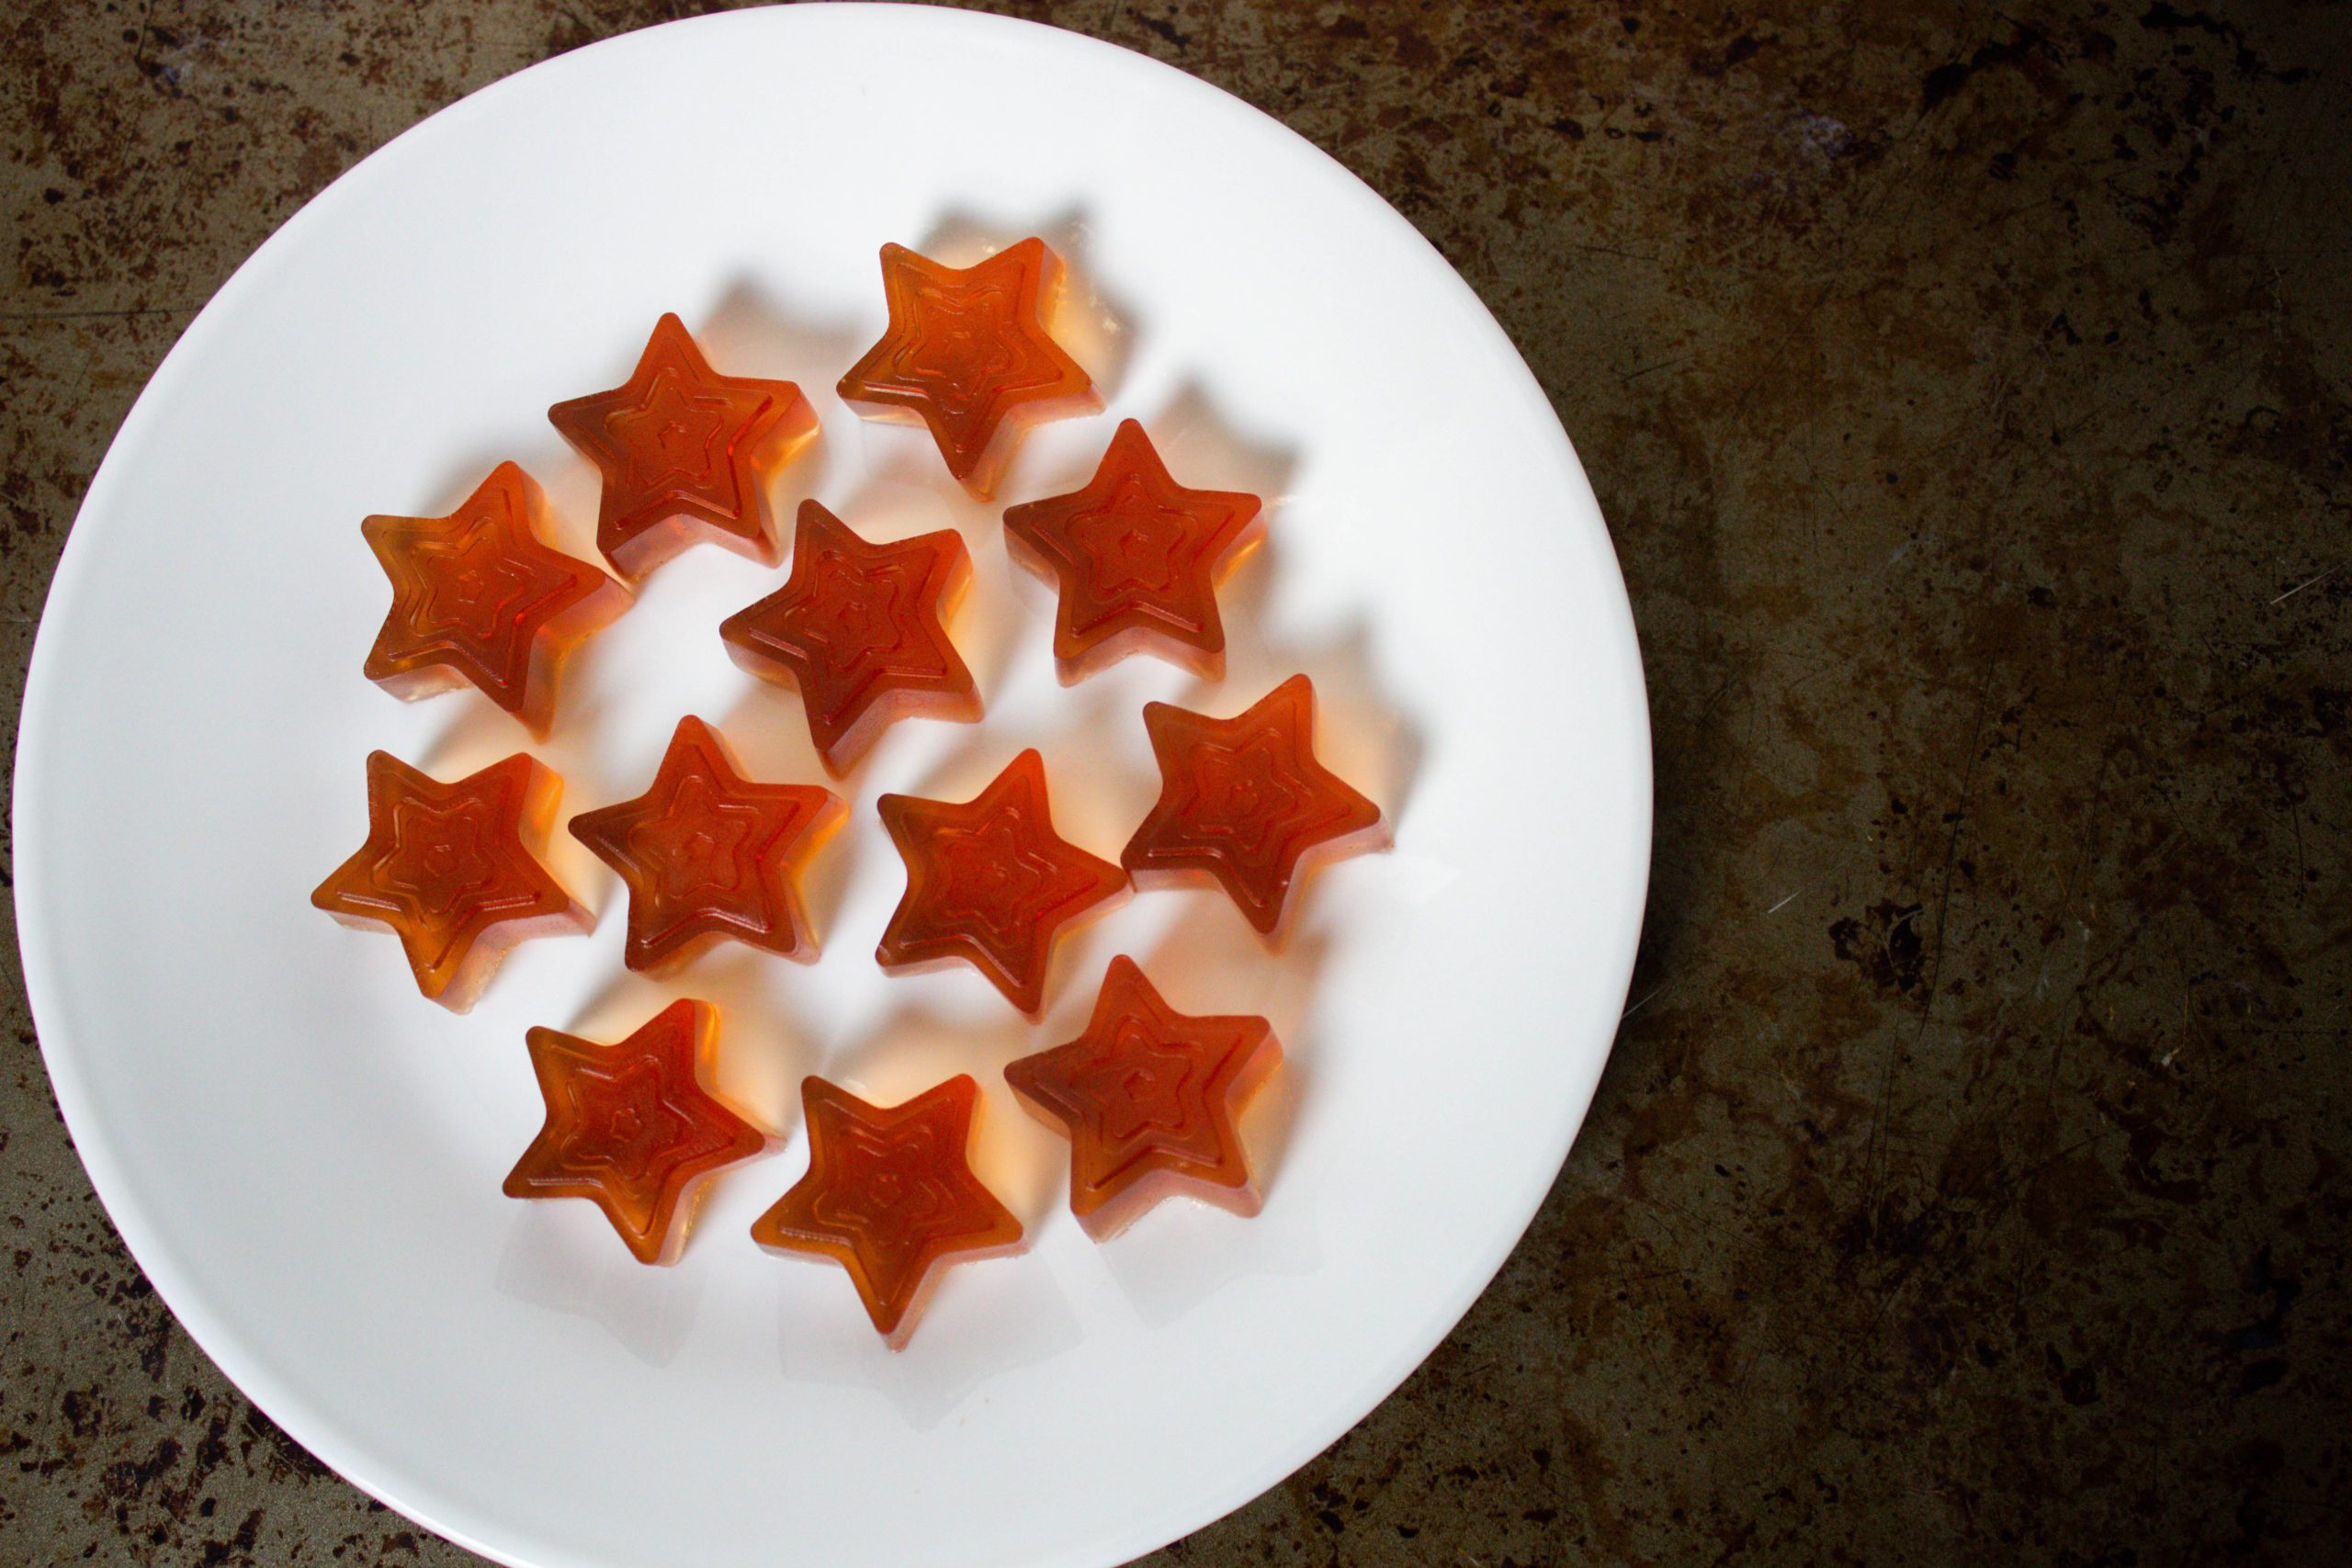 Star-shapped gummy candy on a white plate